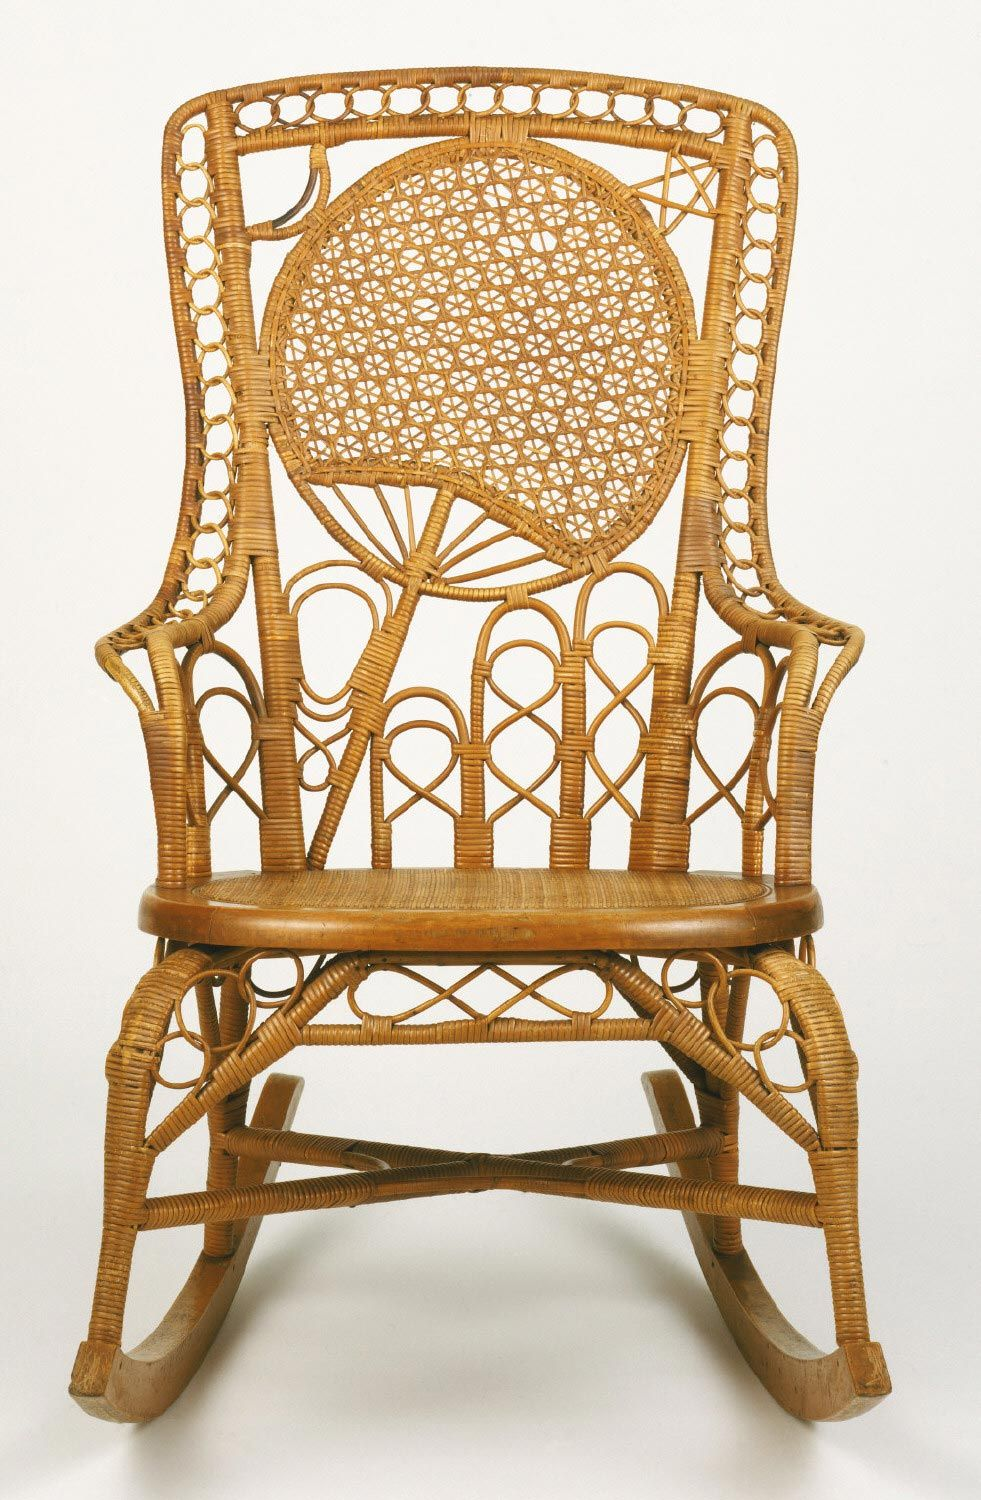 Charmant Rocking Armchair Made By Heywood Brothers And Company, Gardner,  Massachusetts, 1826   1897 Geography: Made In Gardner, Massachusetts,  United States, ...